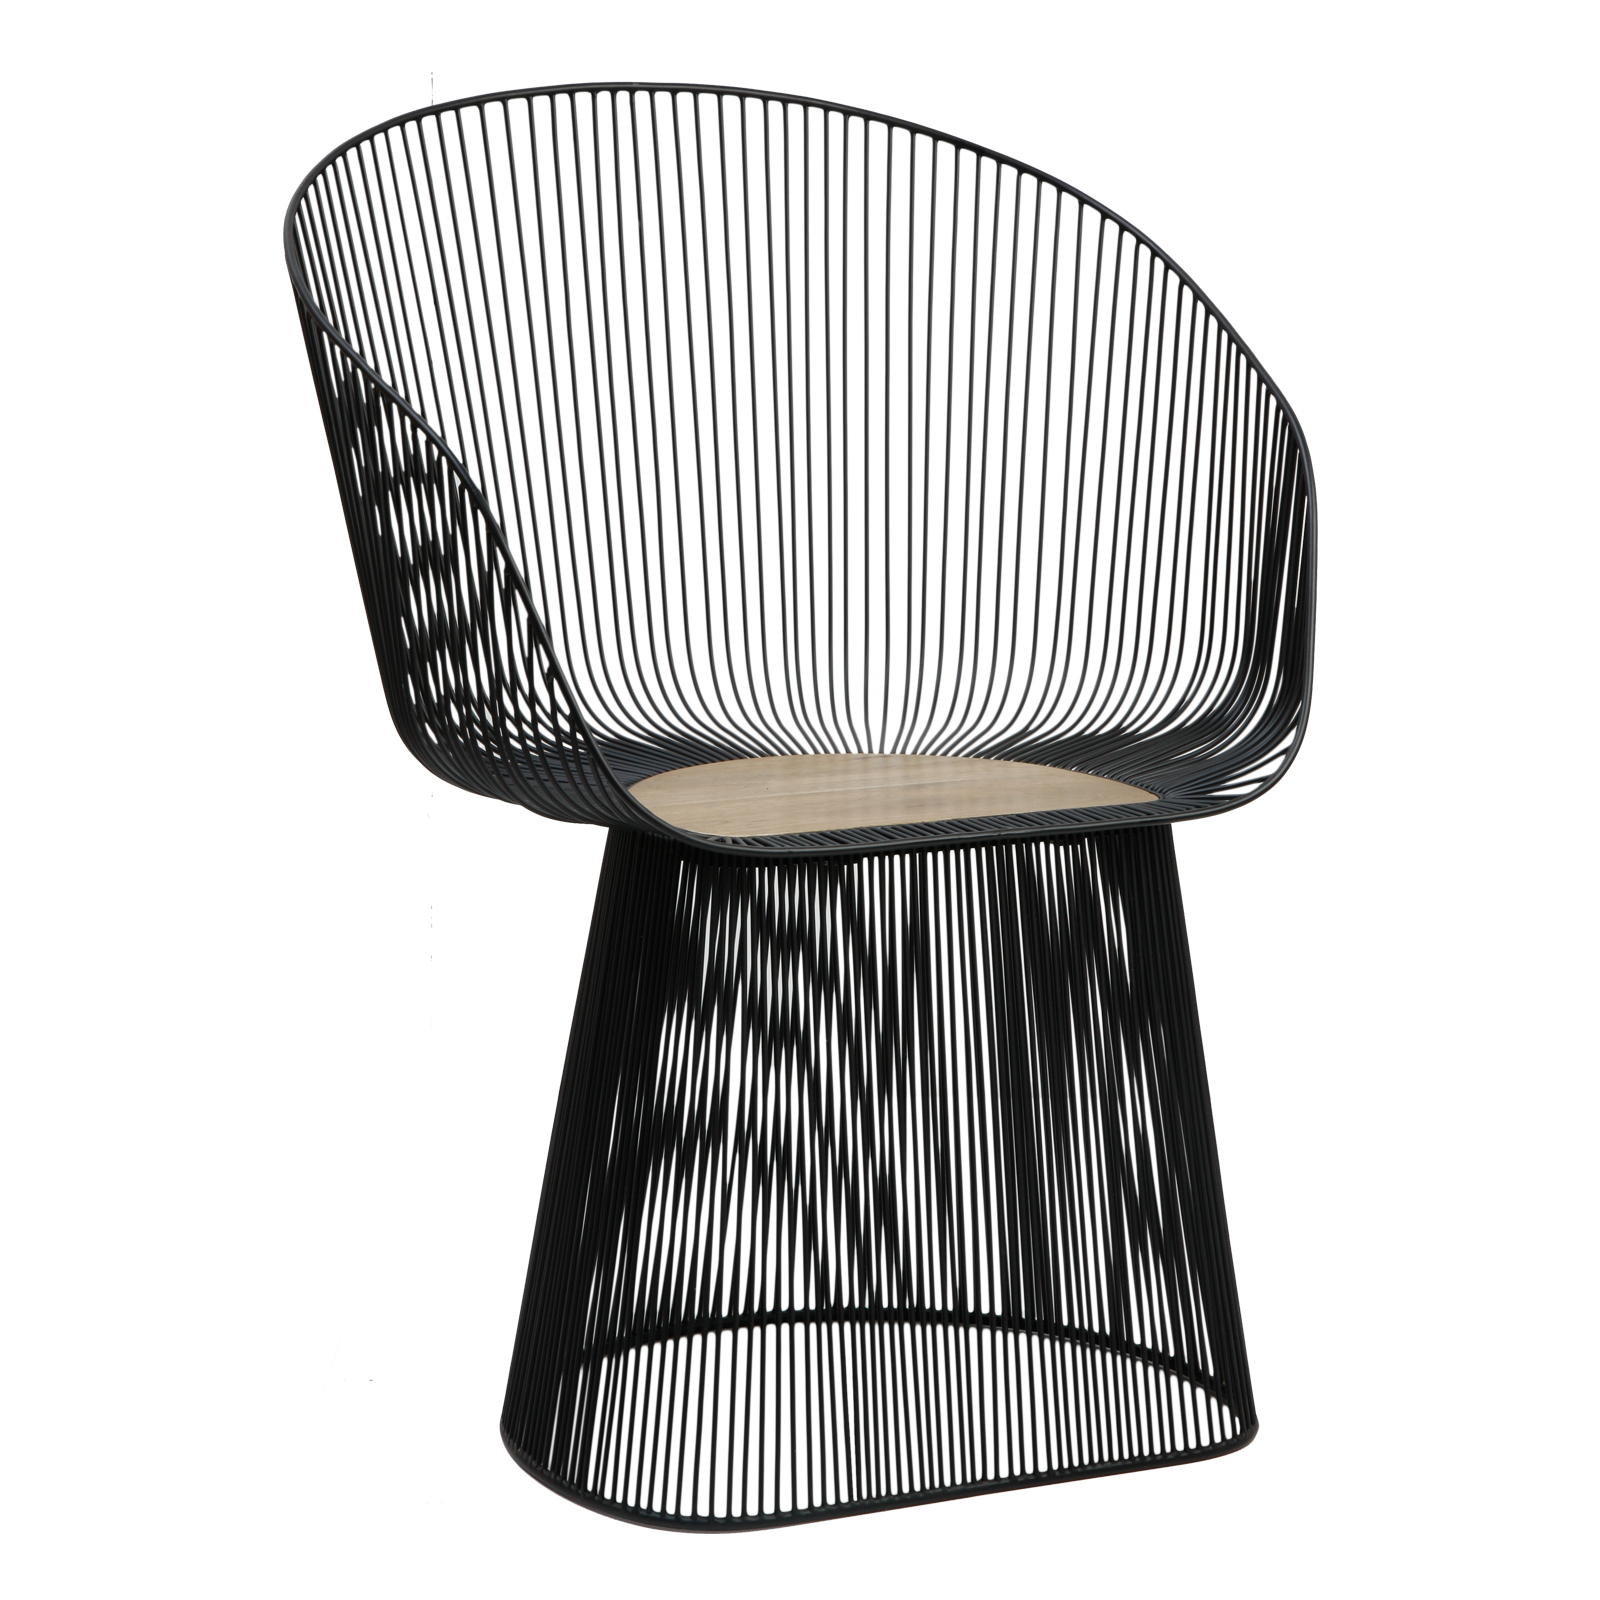 p set of chair modern black zuo heavy metal rustic texture